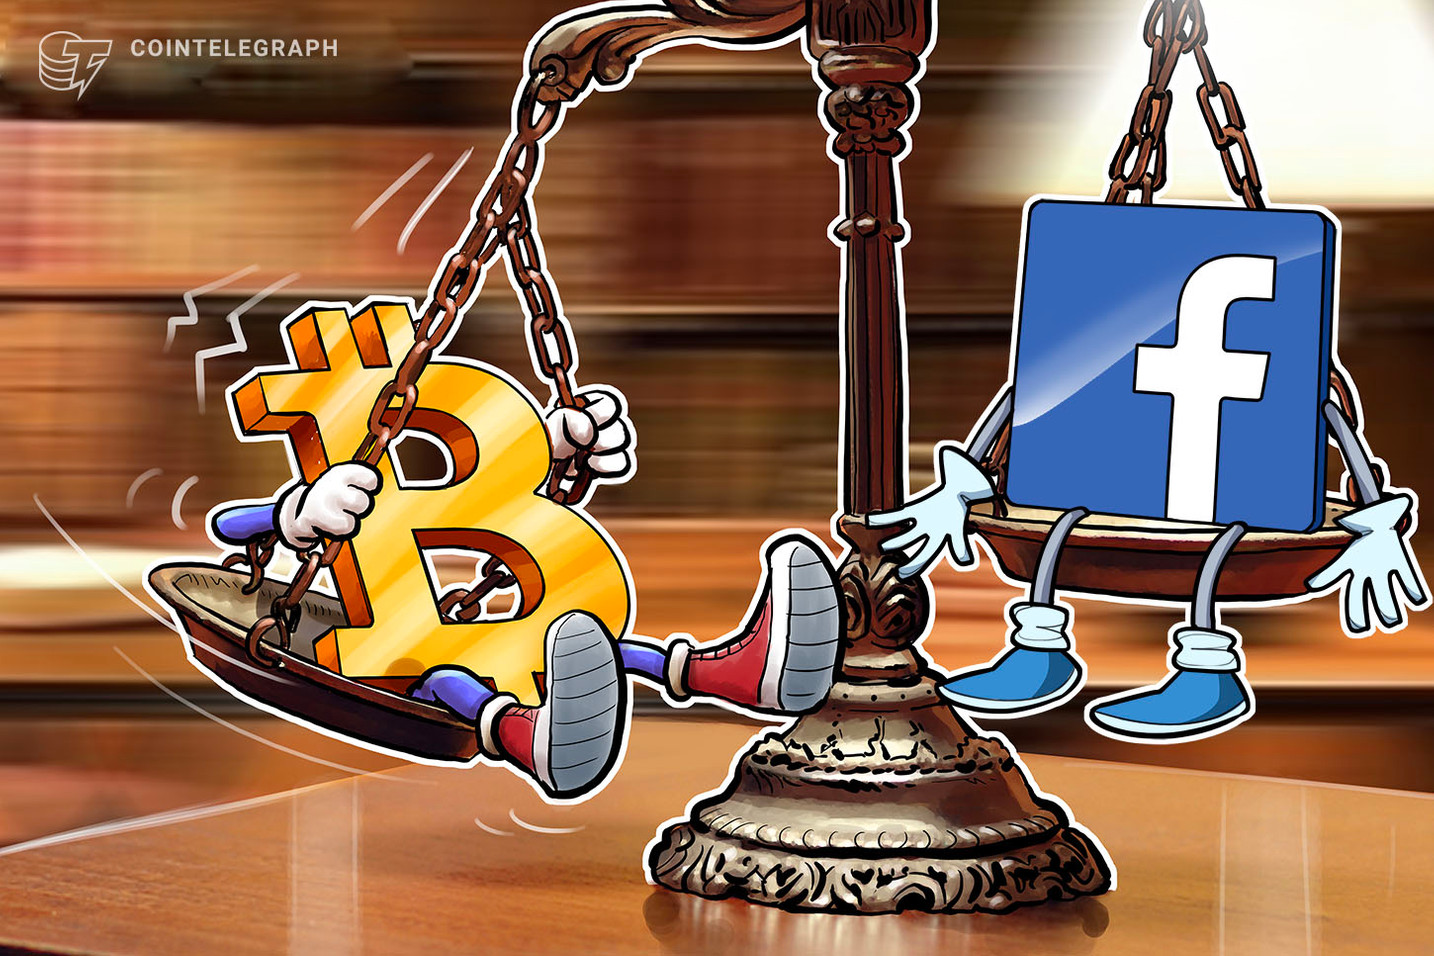 No, It's Not Facebook: Bitcoin Price Already Up 200% in 2019 Before Libra